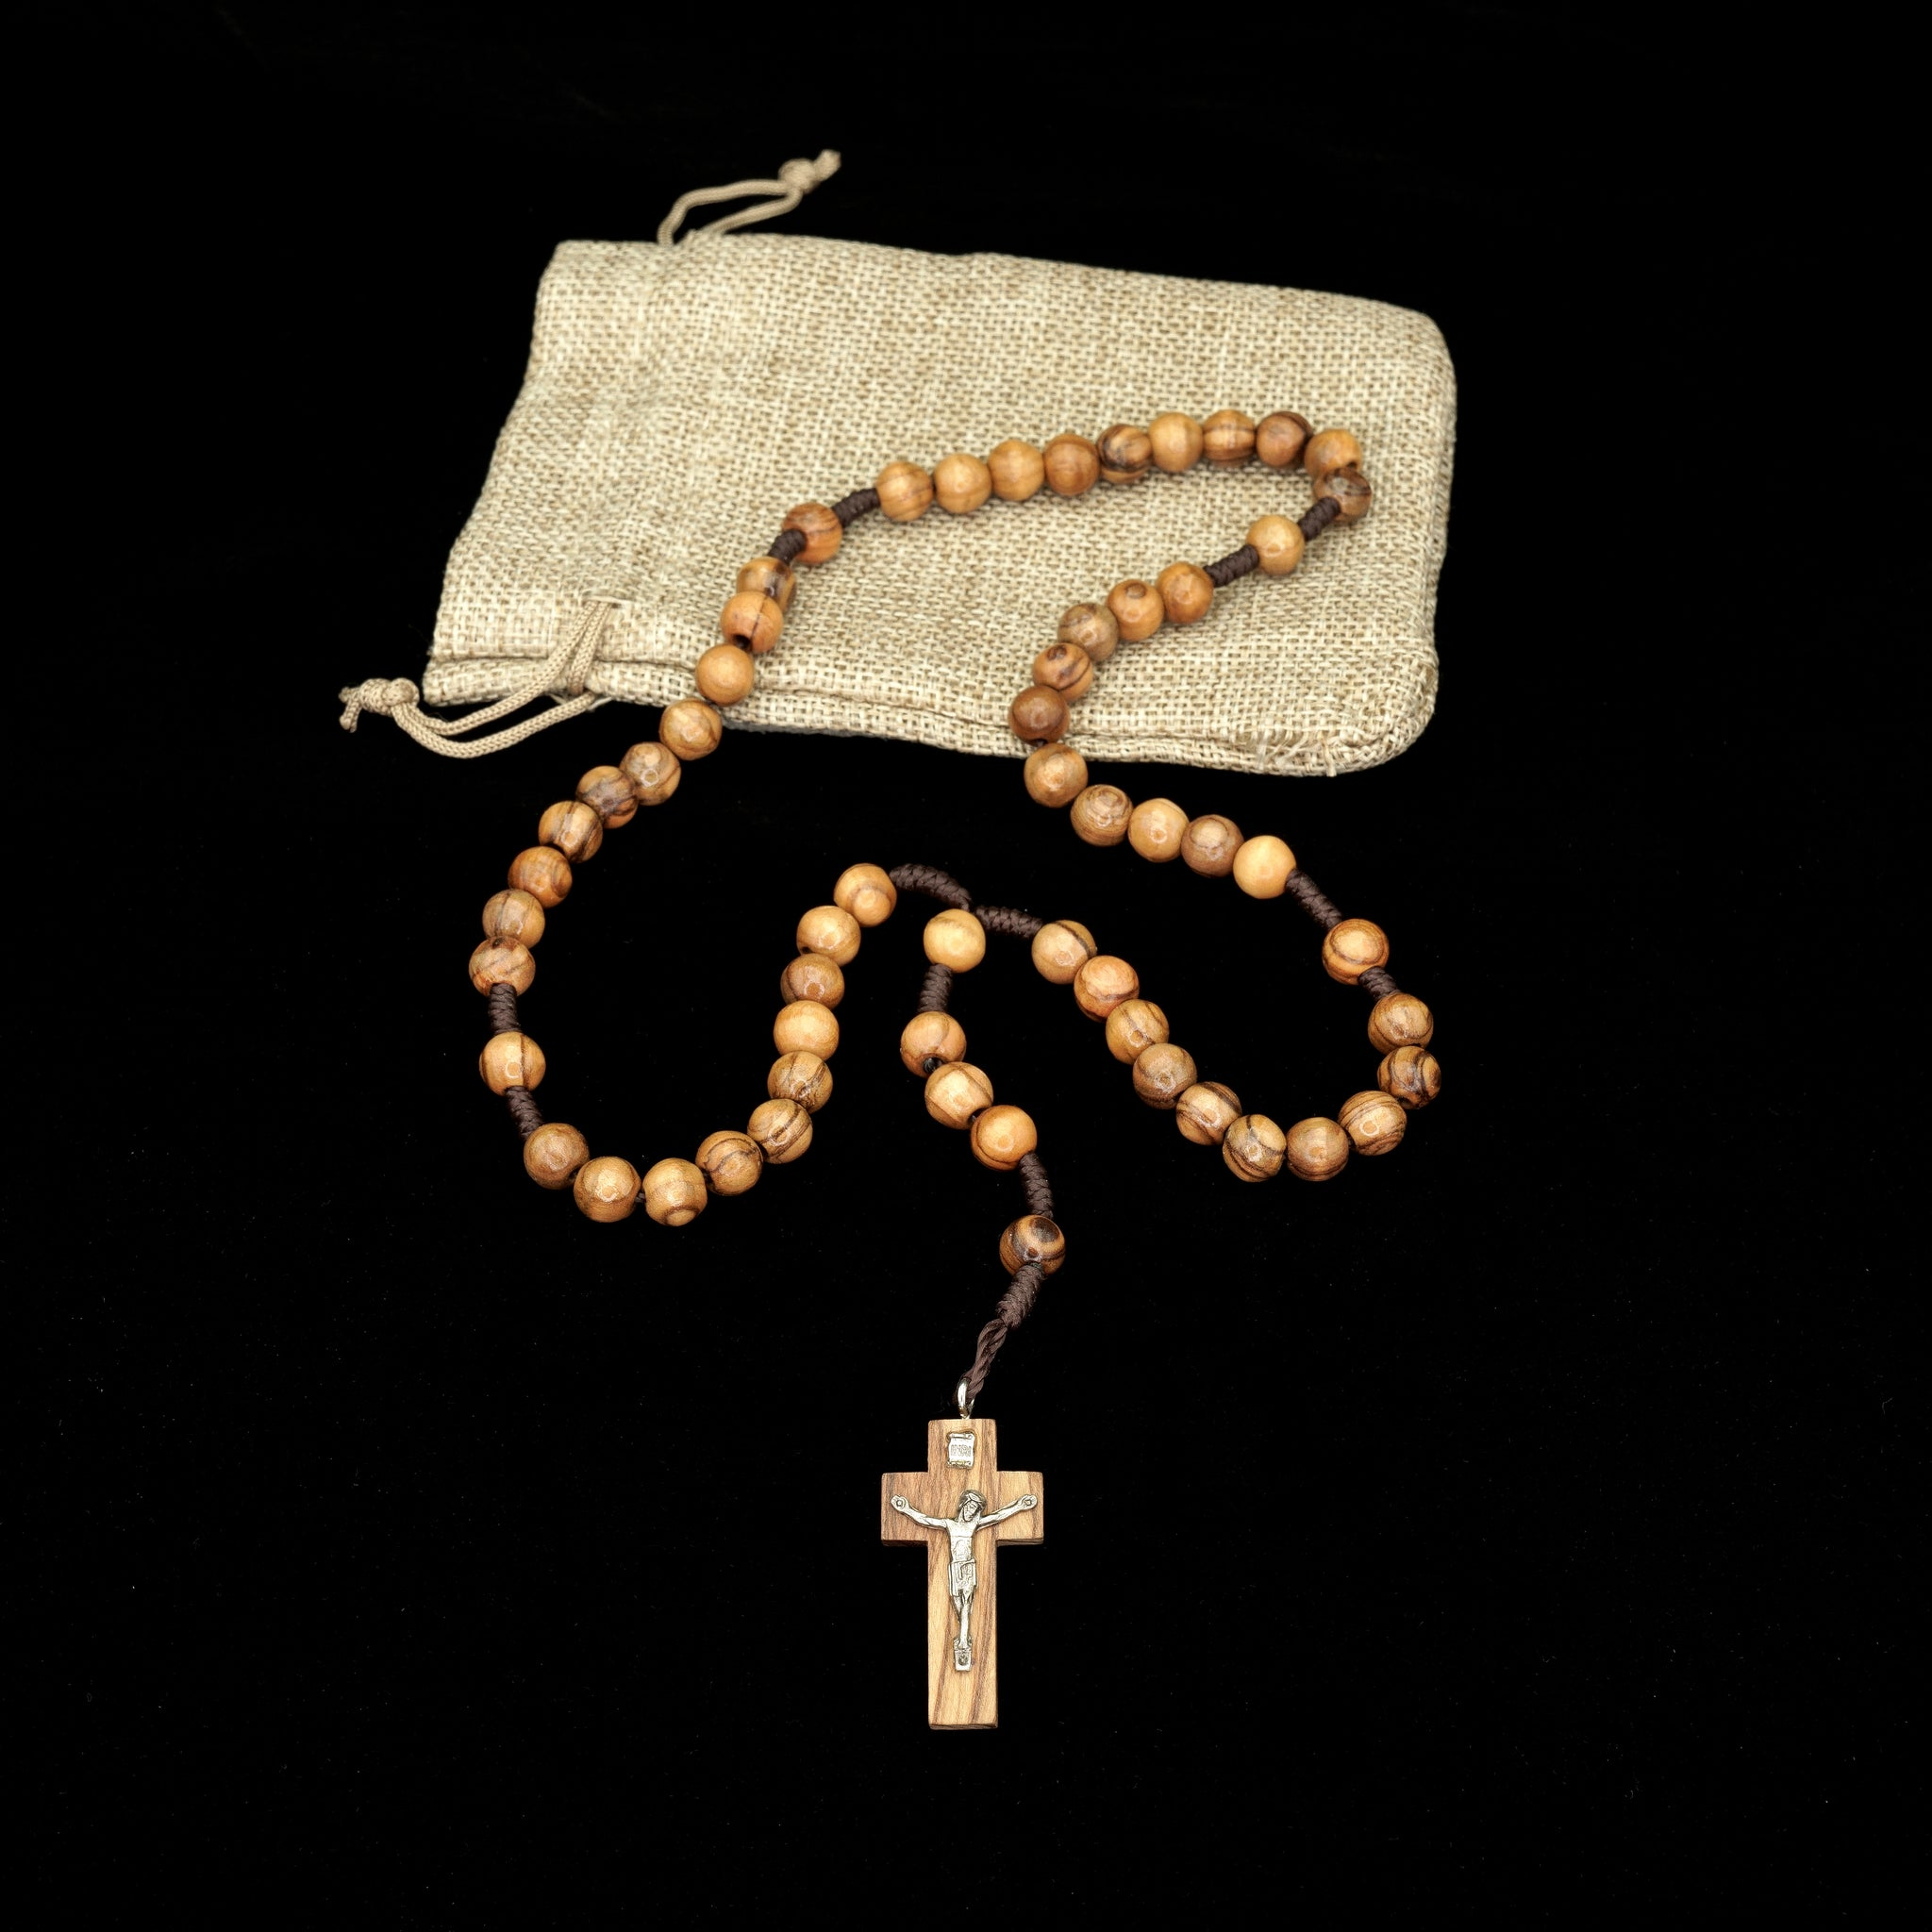 OLIVE WOOD CORDED ROSARY WITH METAL CORPUS